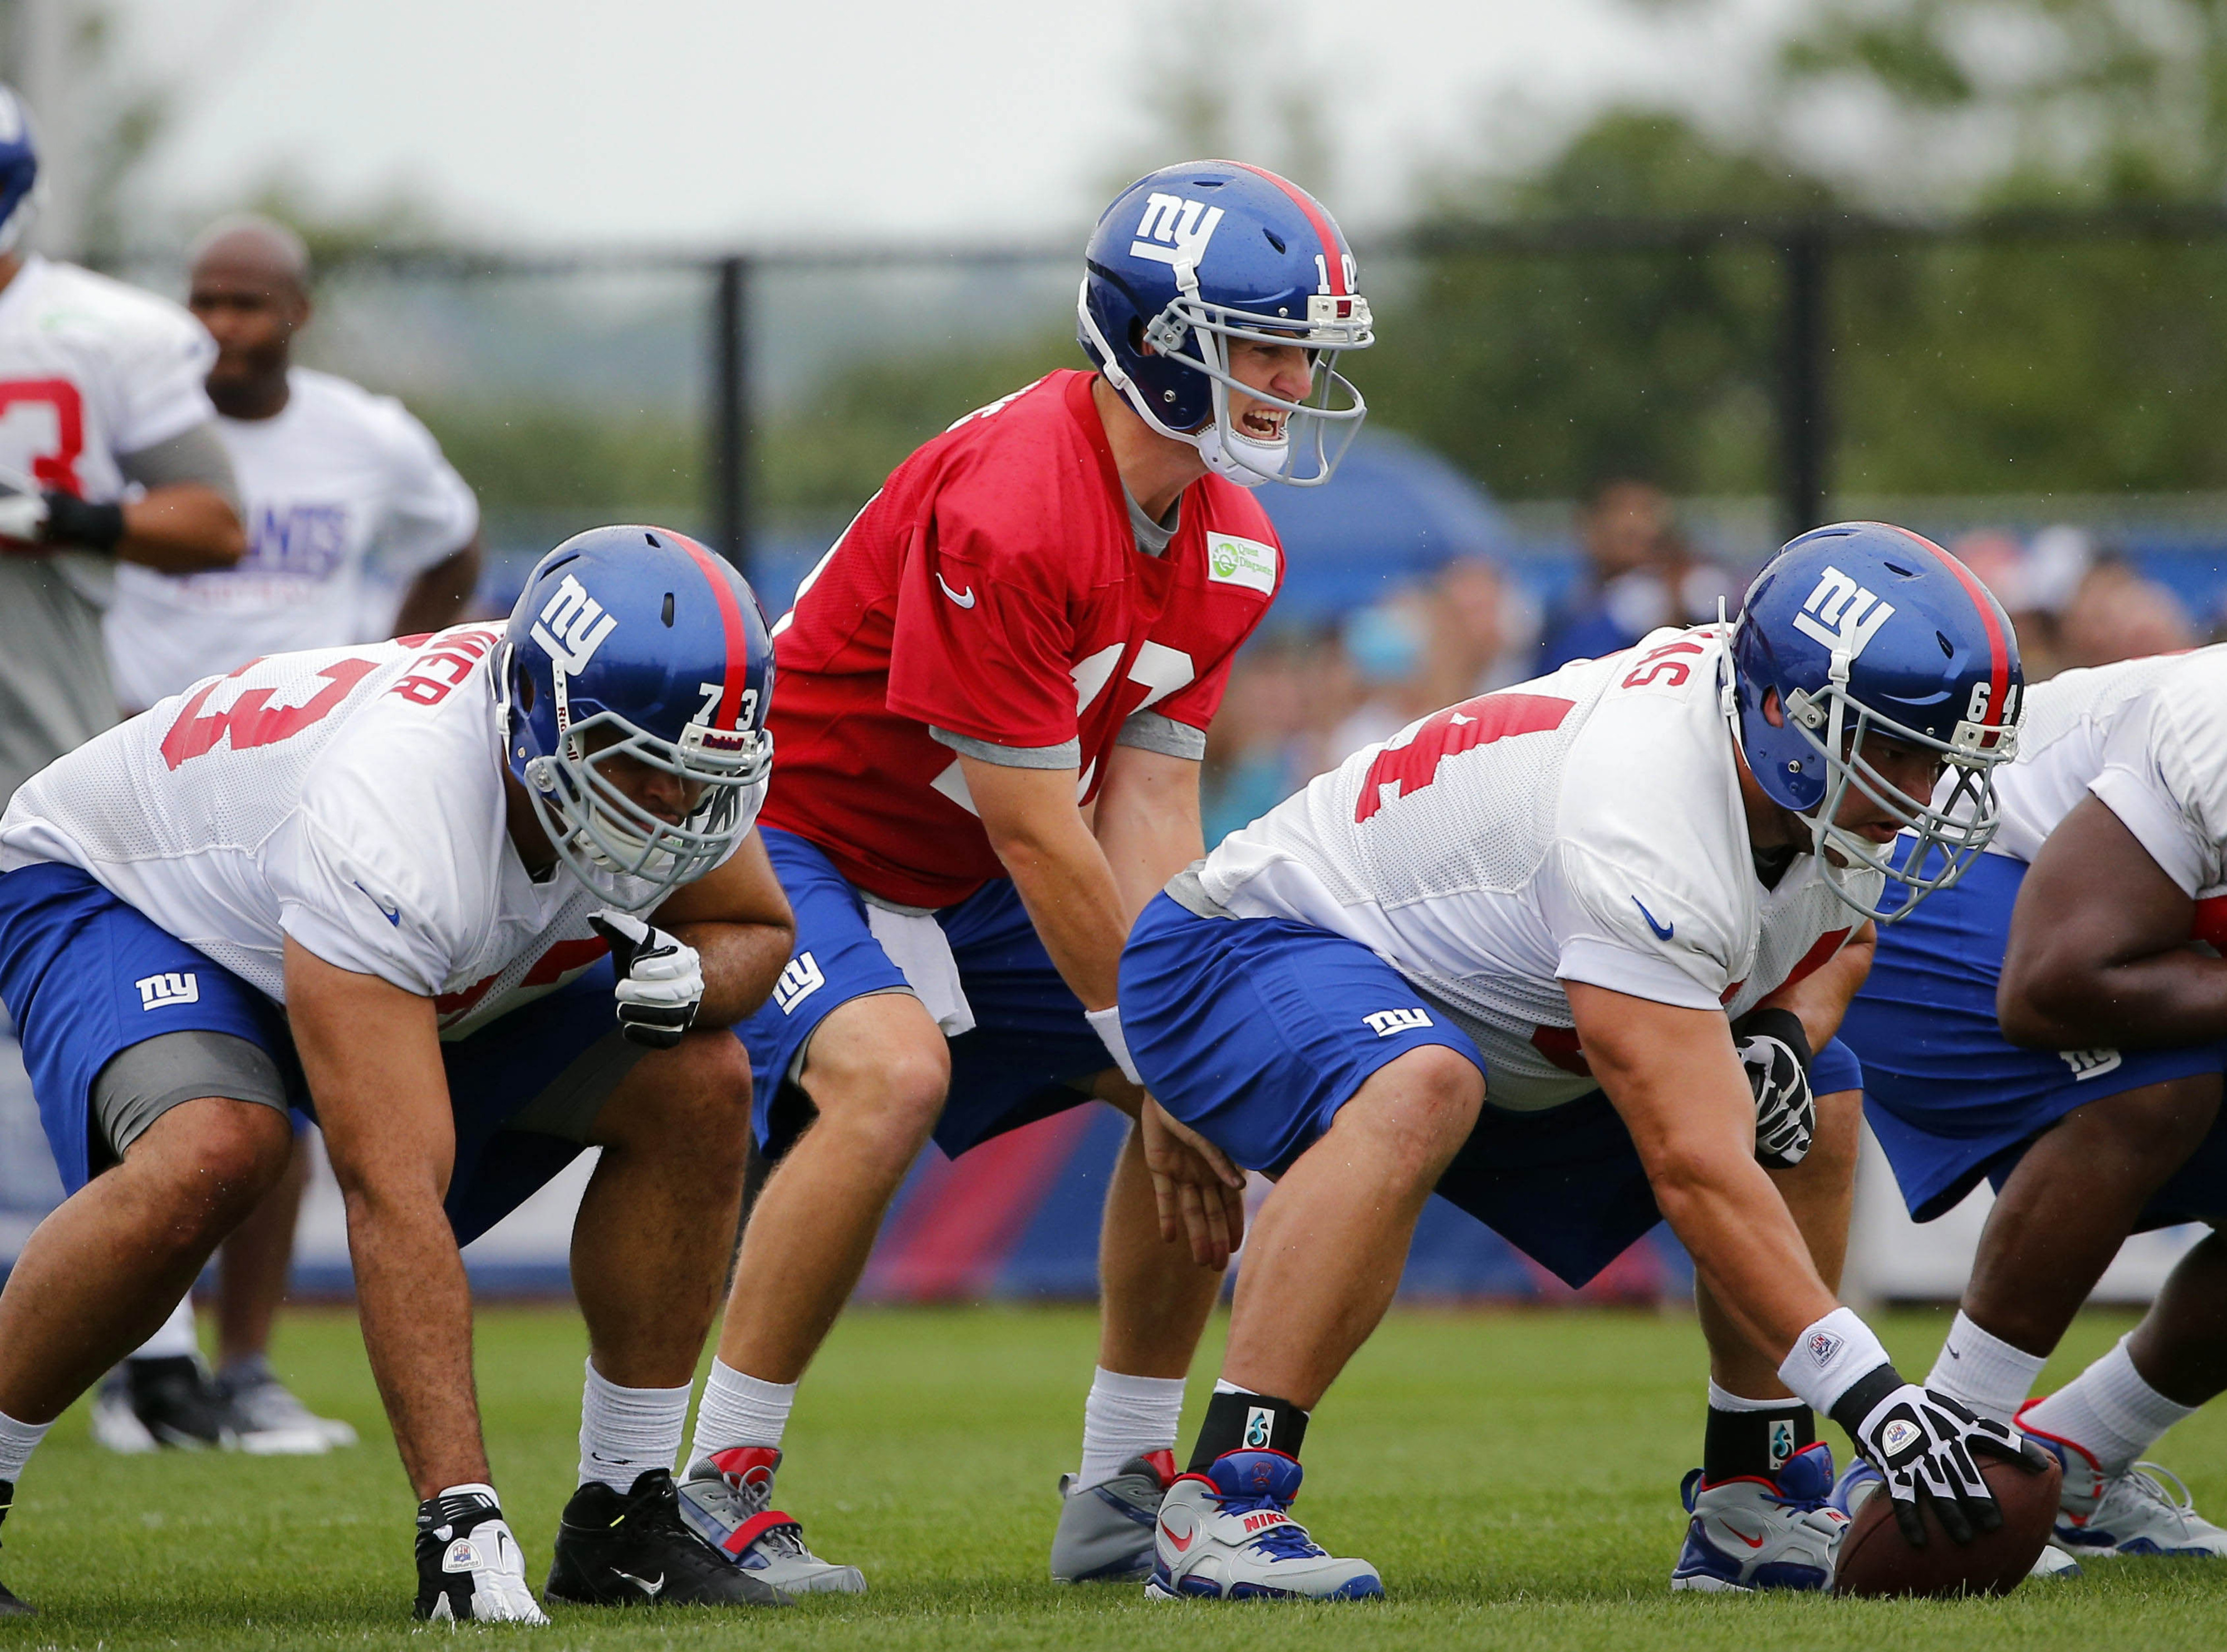 David Baas might not be snapping to Eli Manning on Sunday.